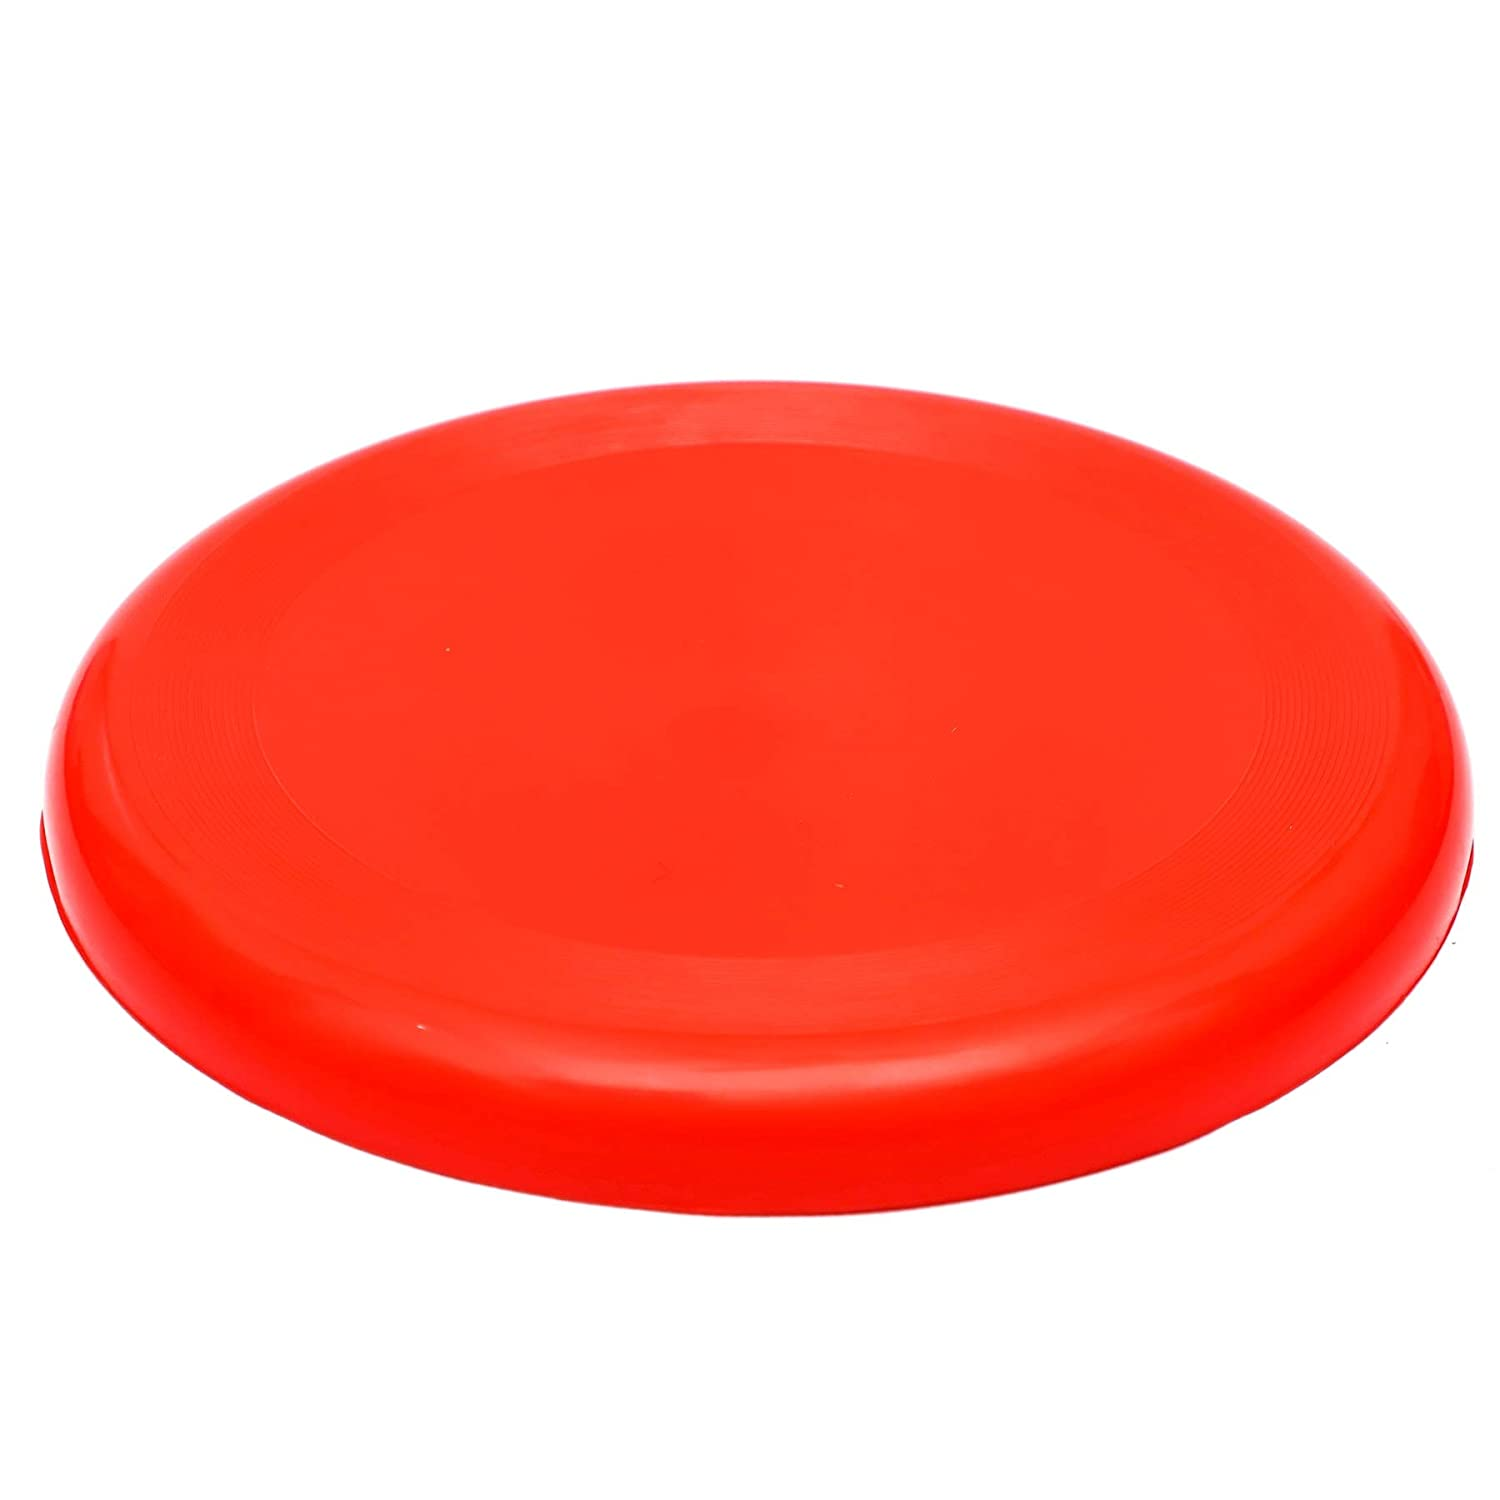 Frisbee - 12 Inches (Red)